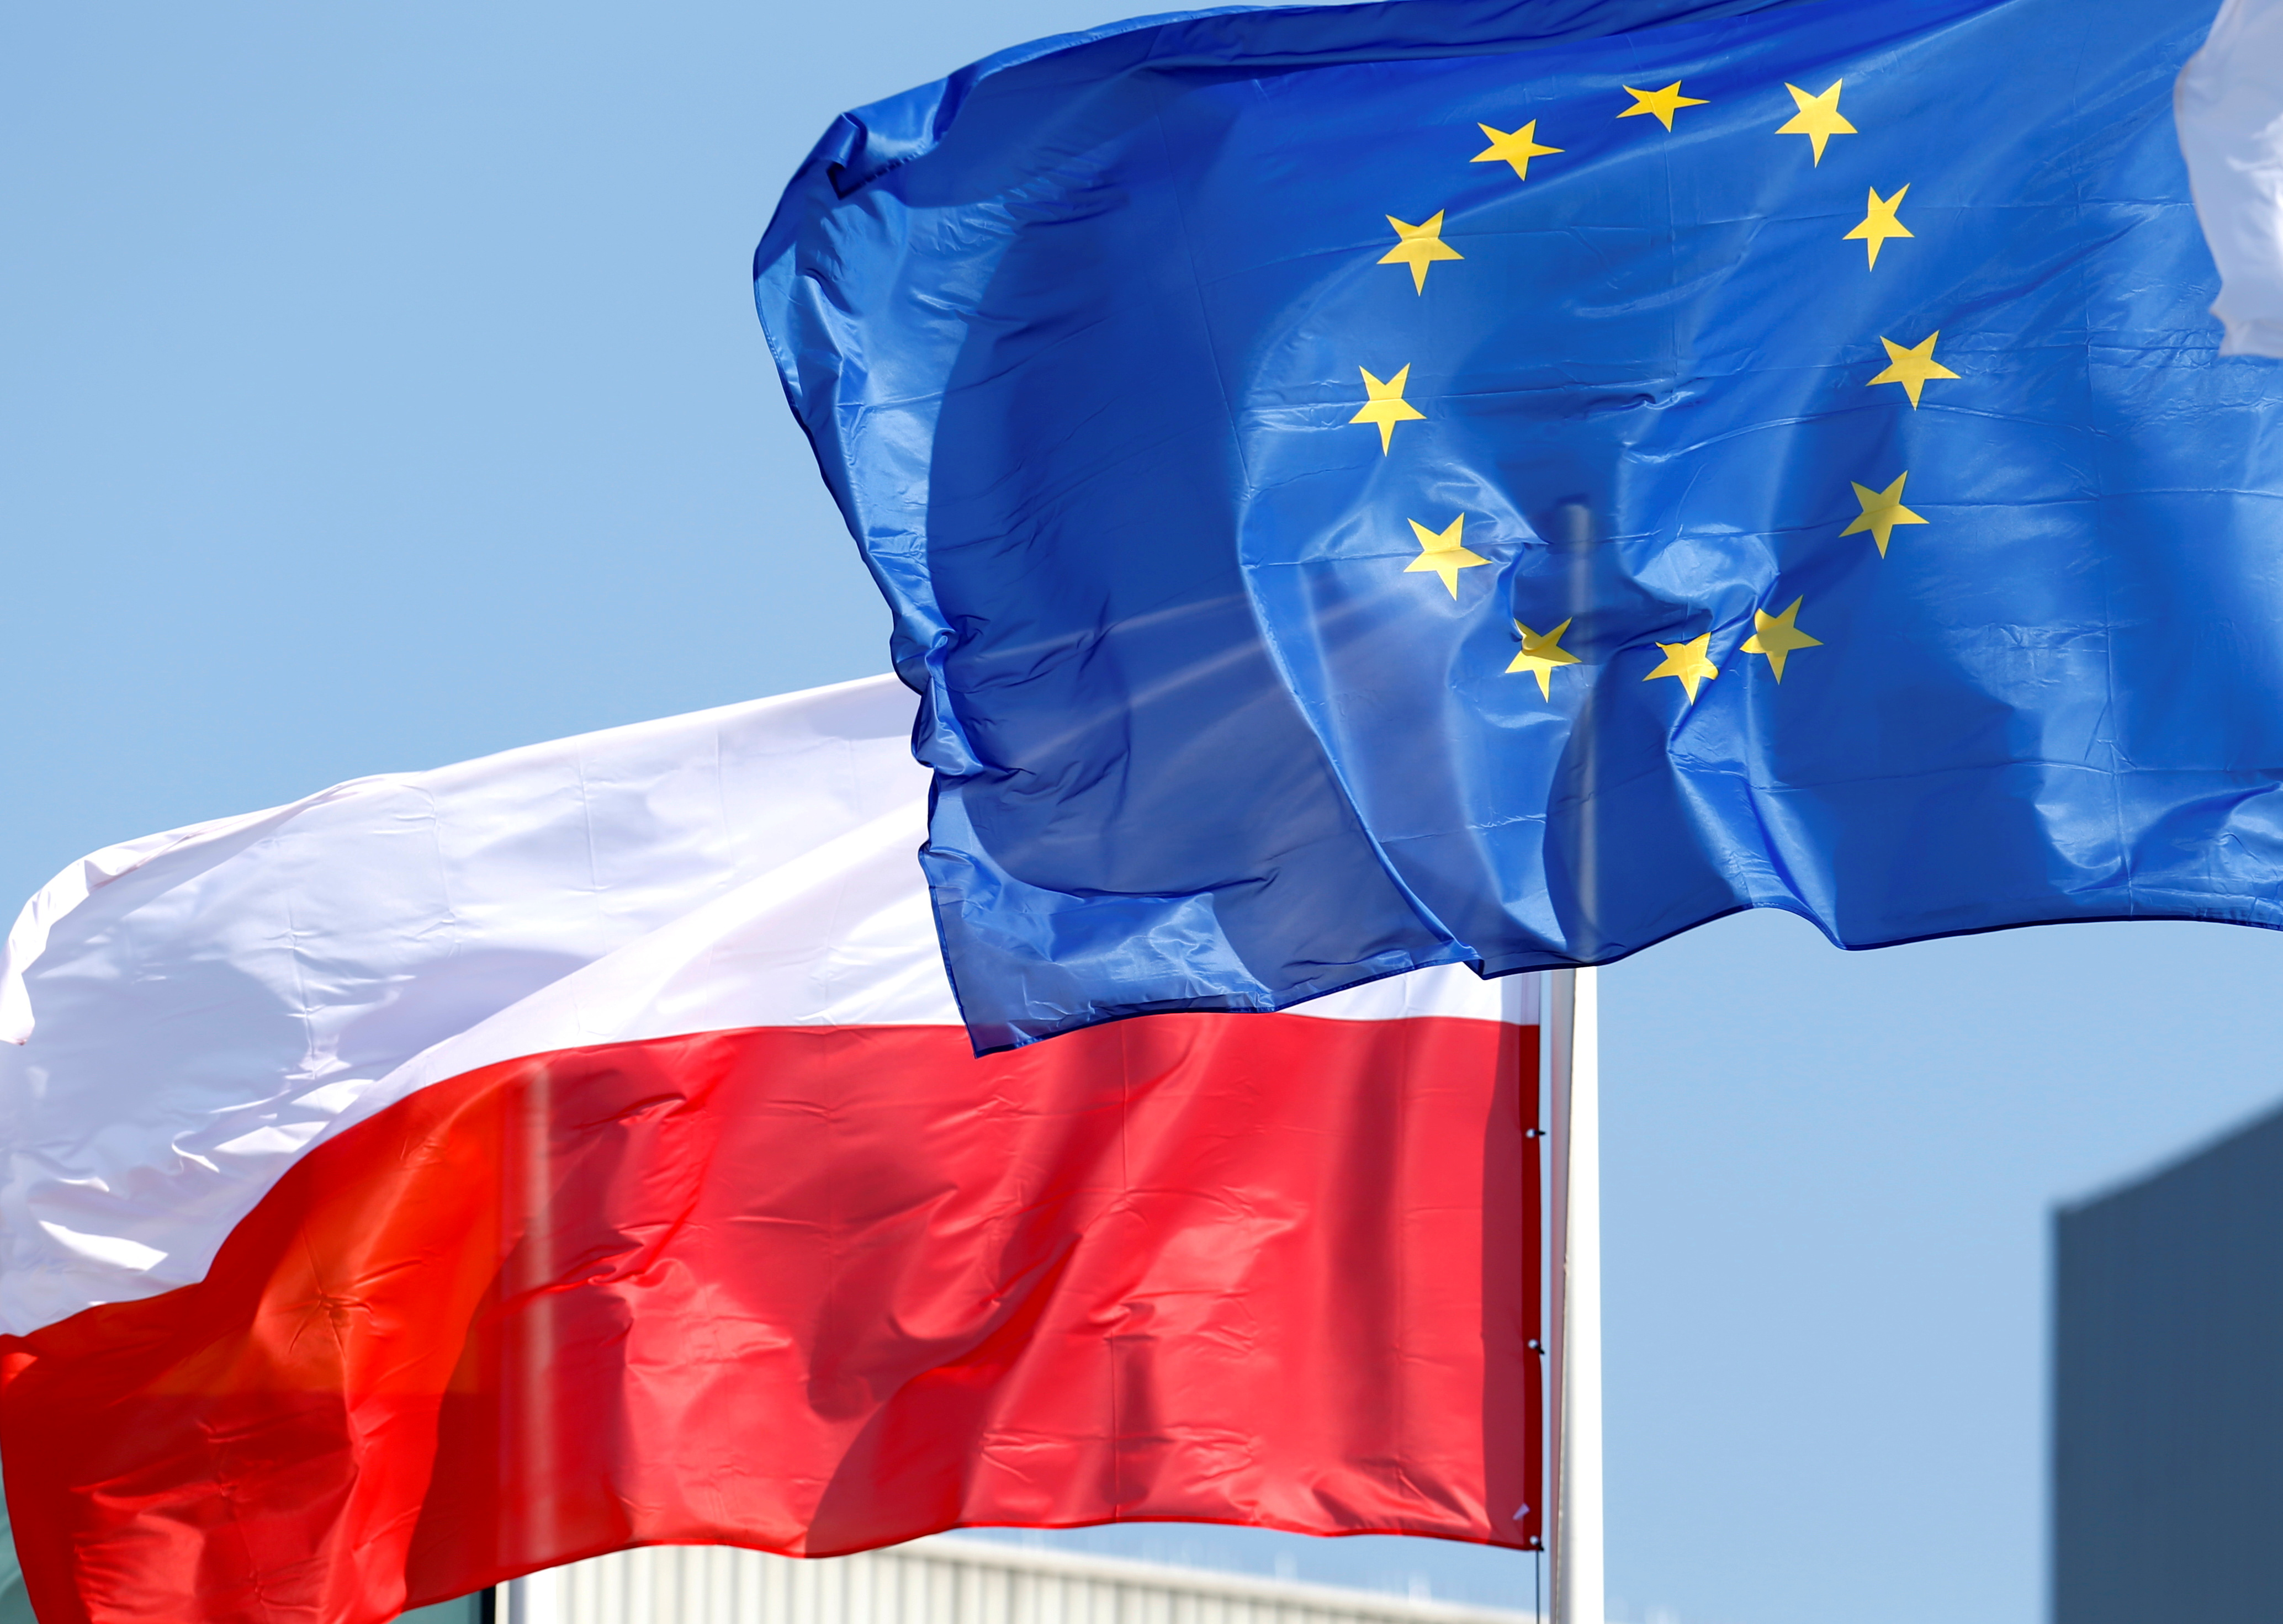 European Union and Polish flags flutter at the Orlen refinery in Mazeikiai, Lithuania April 5, 2019. REUTERS/Ints Kalnins/File Photo